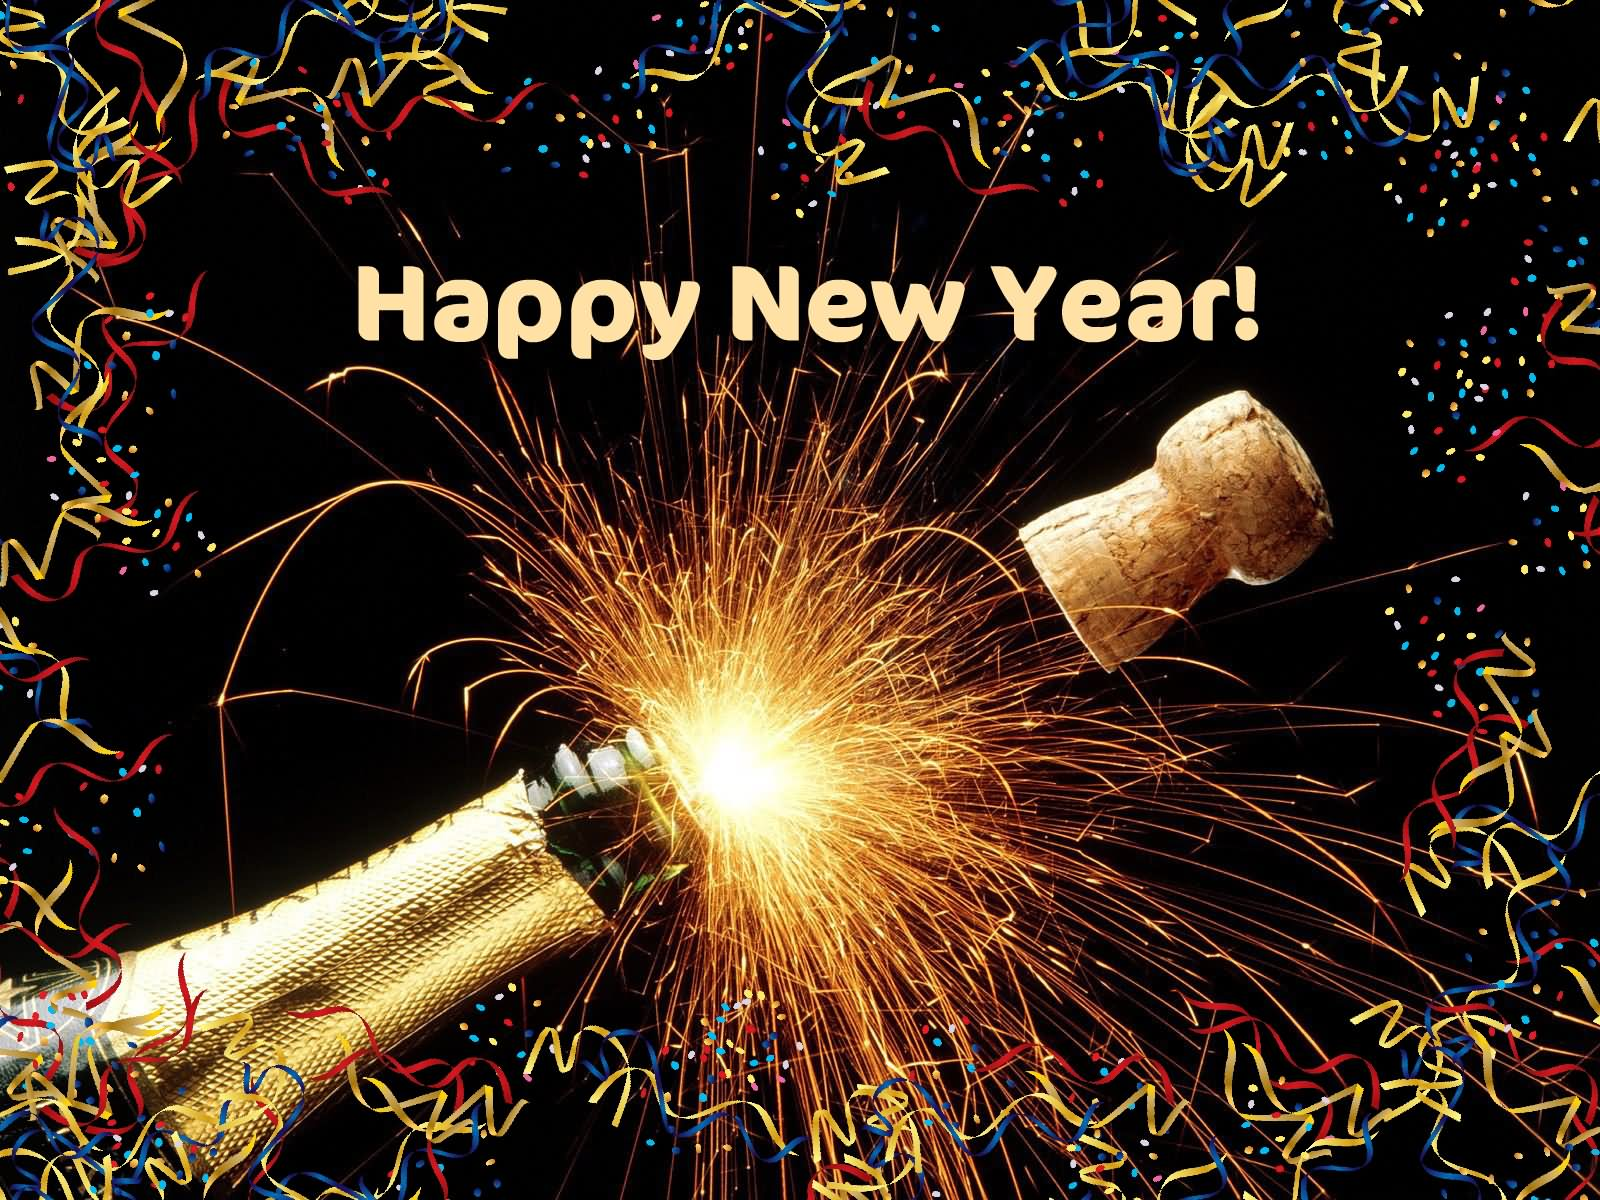 Happy New Year Champagne Bottle Picture